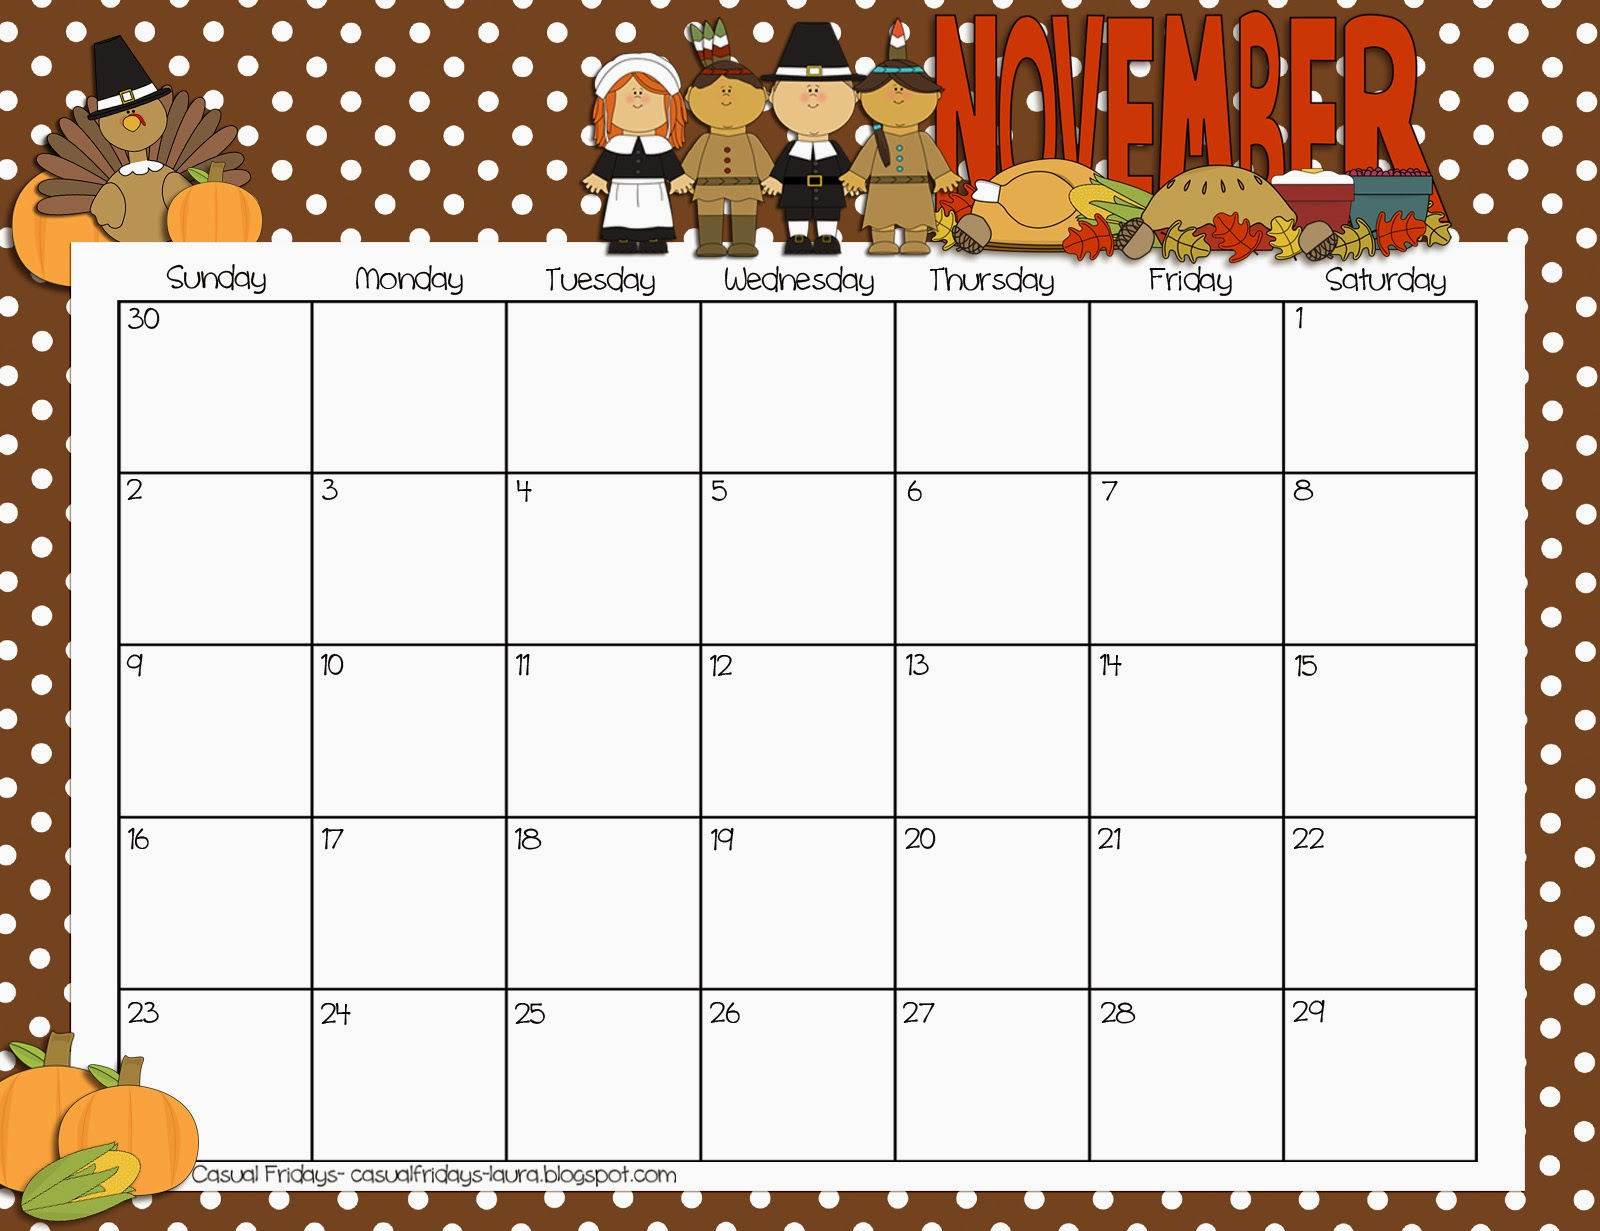 Fun 2015 Calendar Printable November | Calendar Template 2016